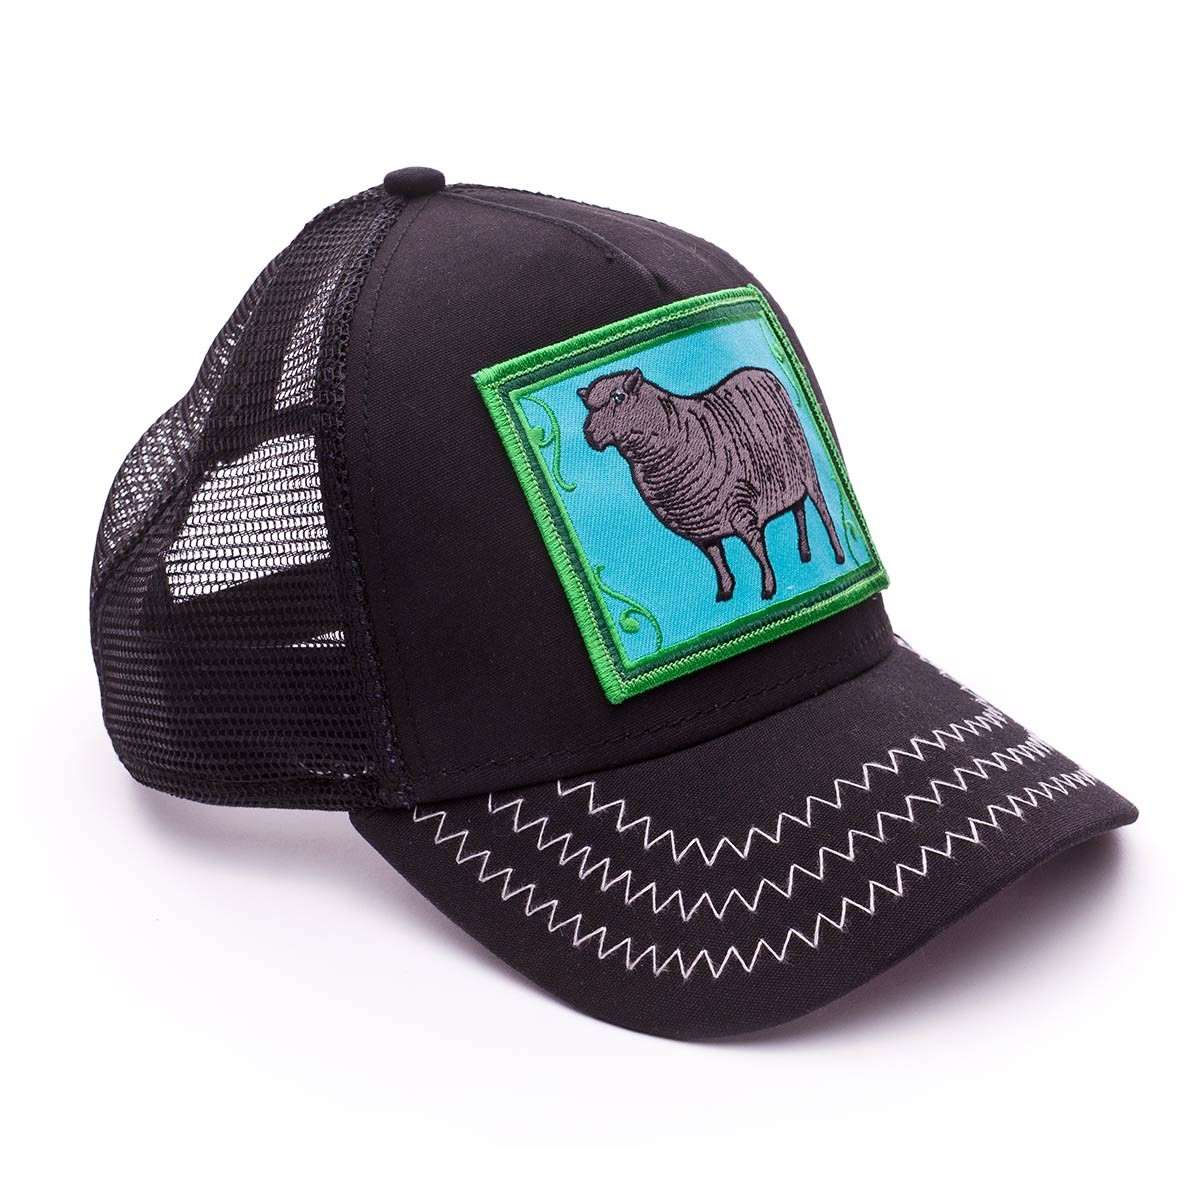 Cap Goorin Bros Black Sheep Black - Football store Fútbol Emotion d03eb5eb4cd